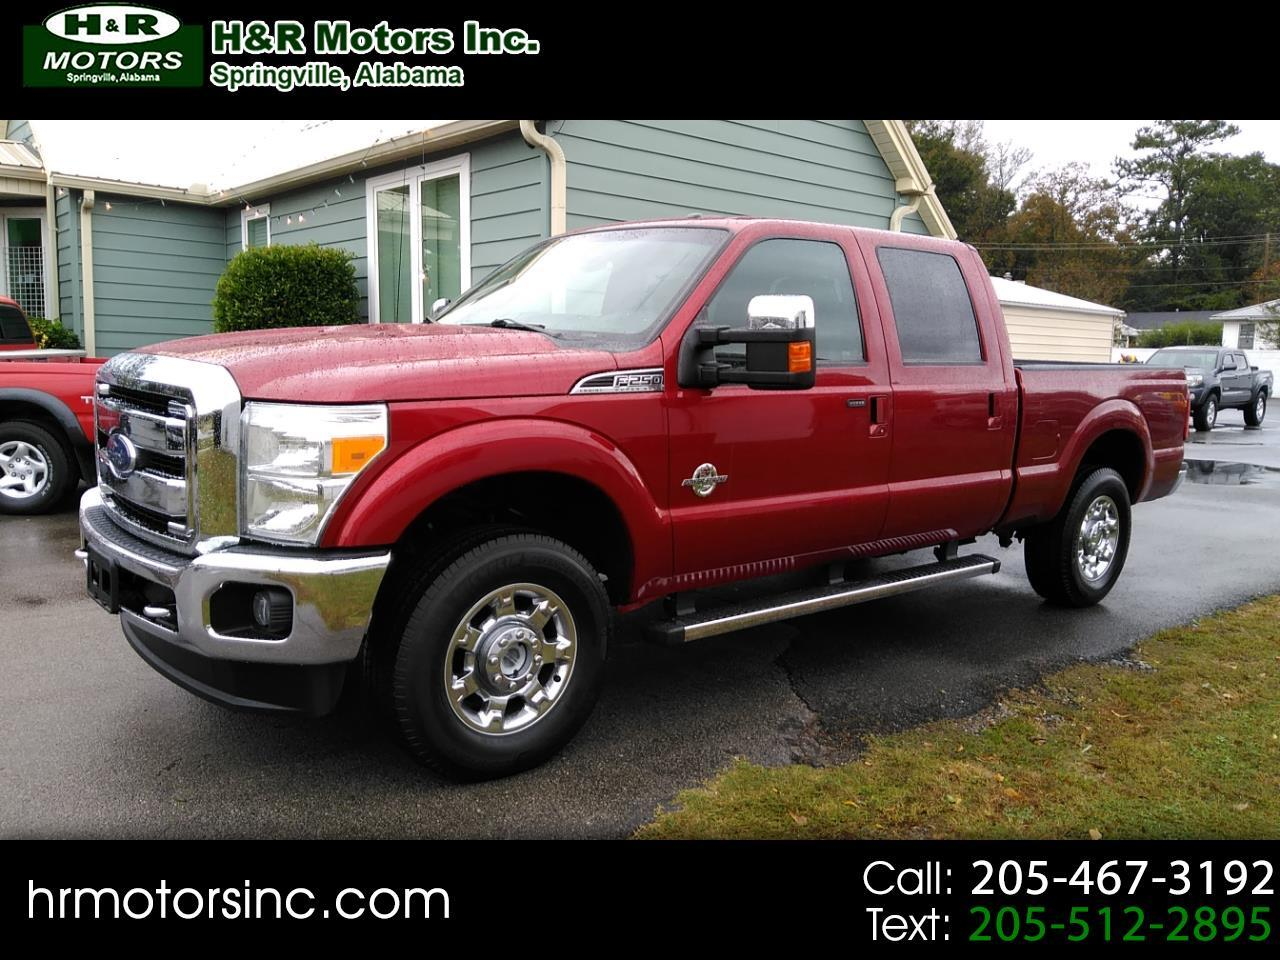 2015 Ford Super Duty F-250 SRW SUPER DUTY Lariat